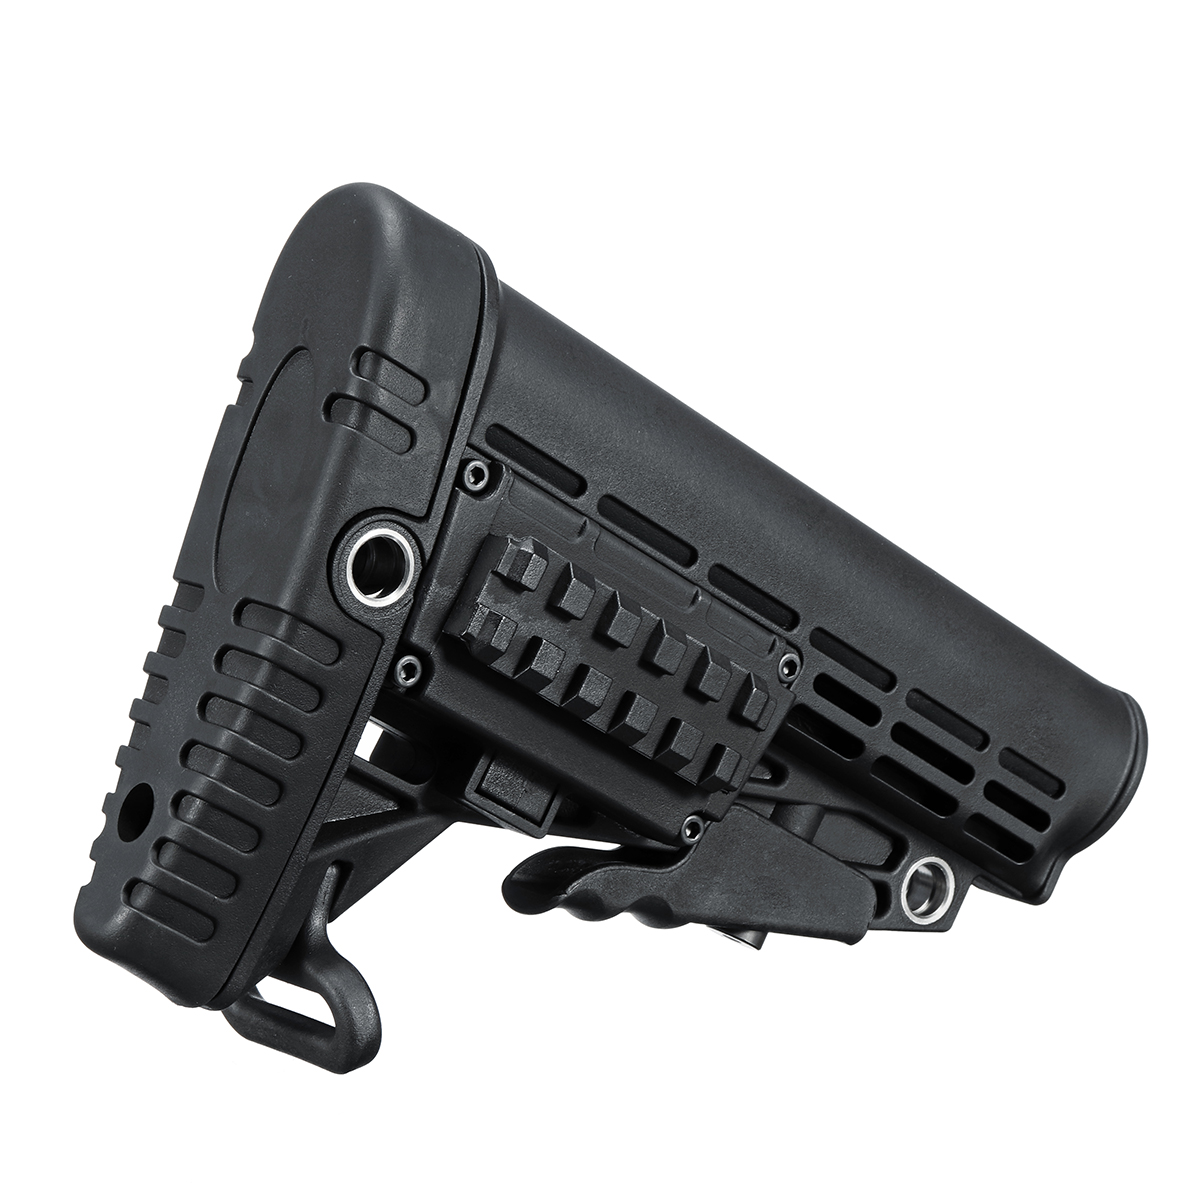 ACC Tactical Nylon Buttstock for JinMing Gen8 M4A1 Replacement Accessories